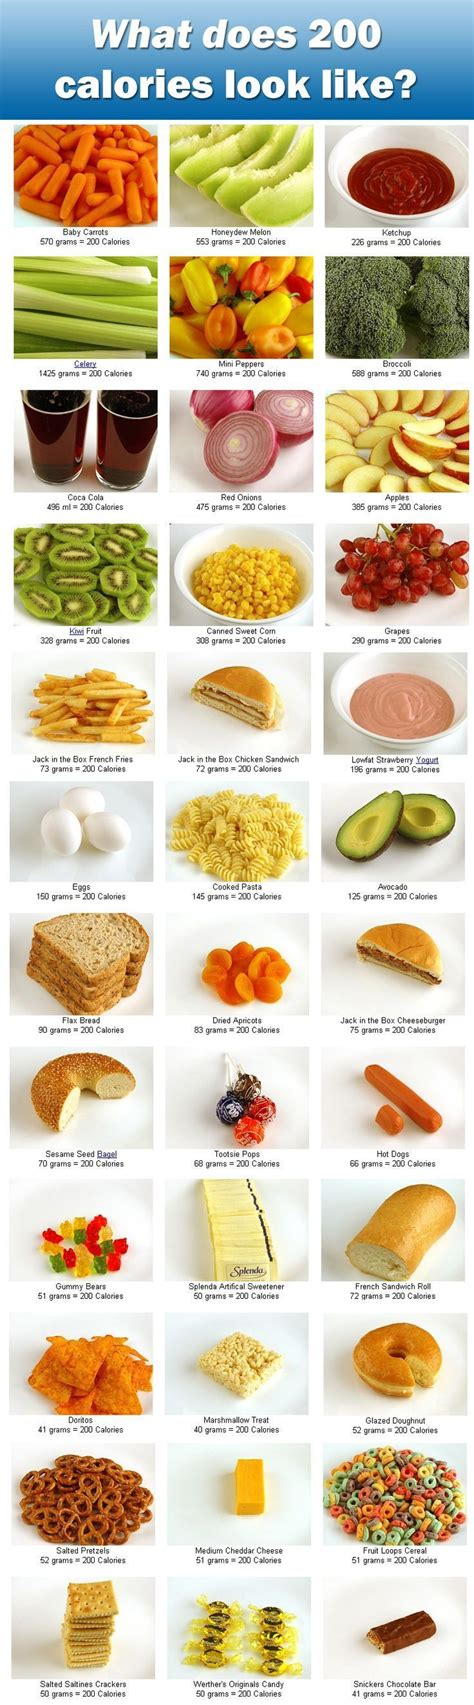 What 200 Calories Look Like What 200 Calories Looks Like Pictures Photos And Images